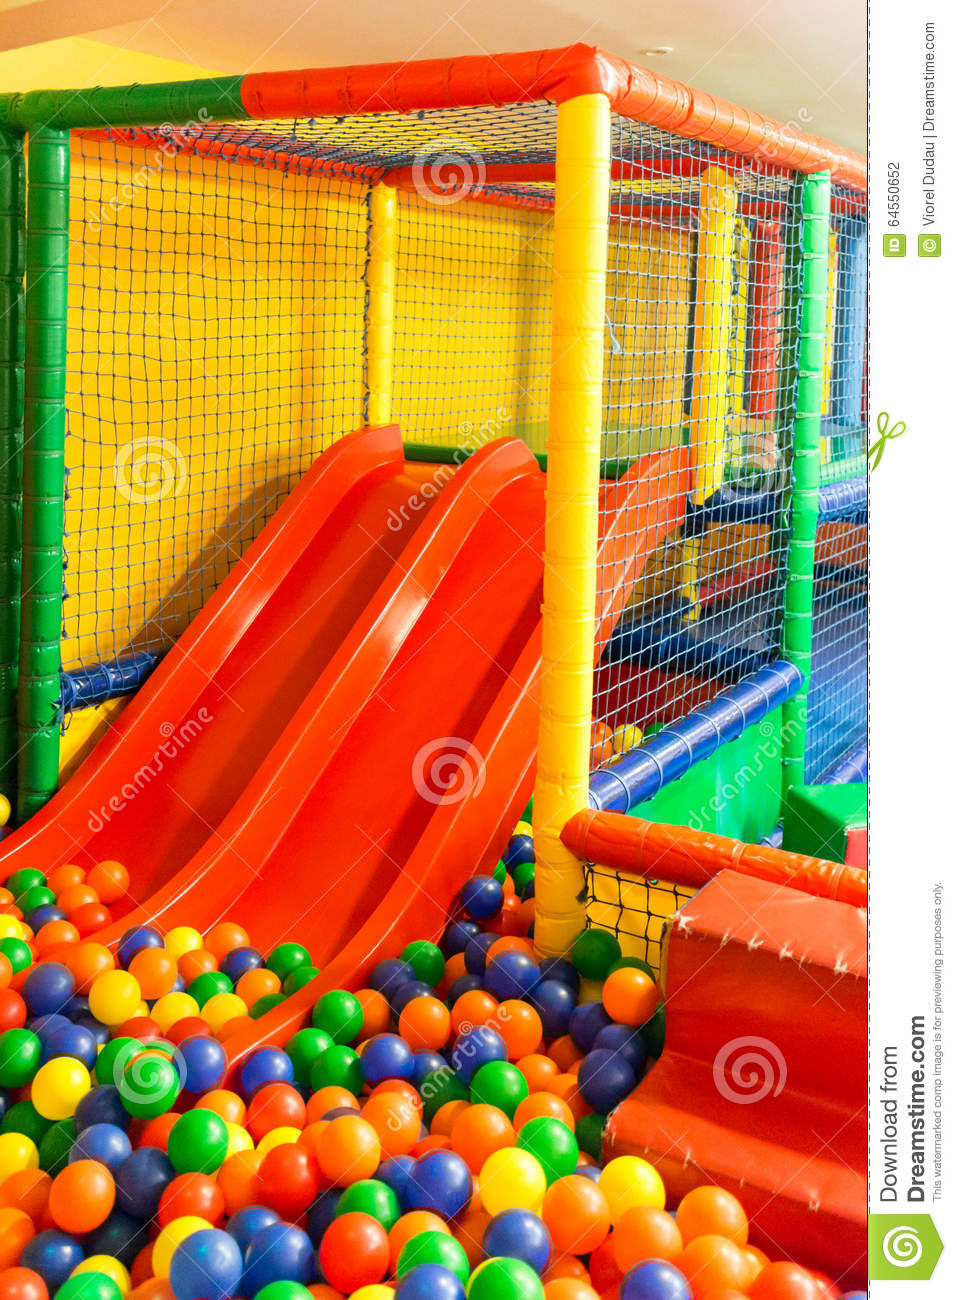 indoor playground stock photo  image of slides  colorful